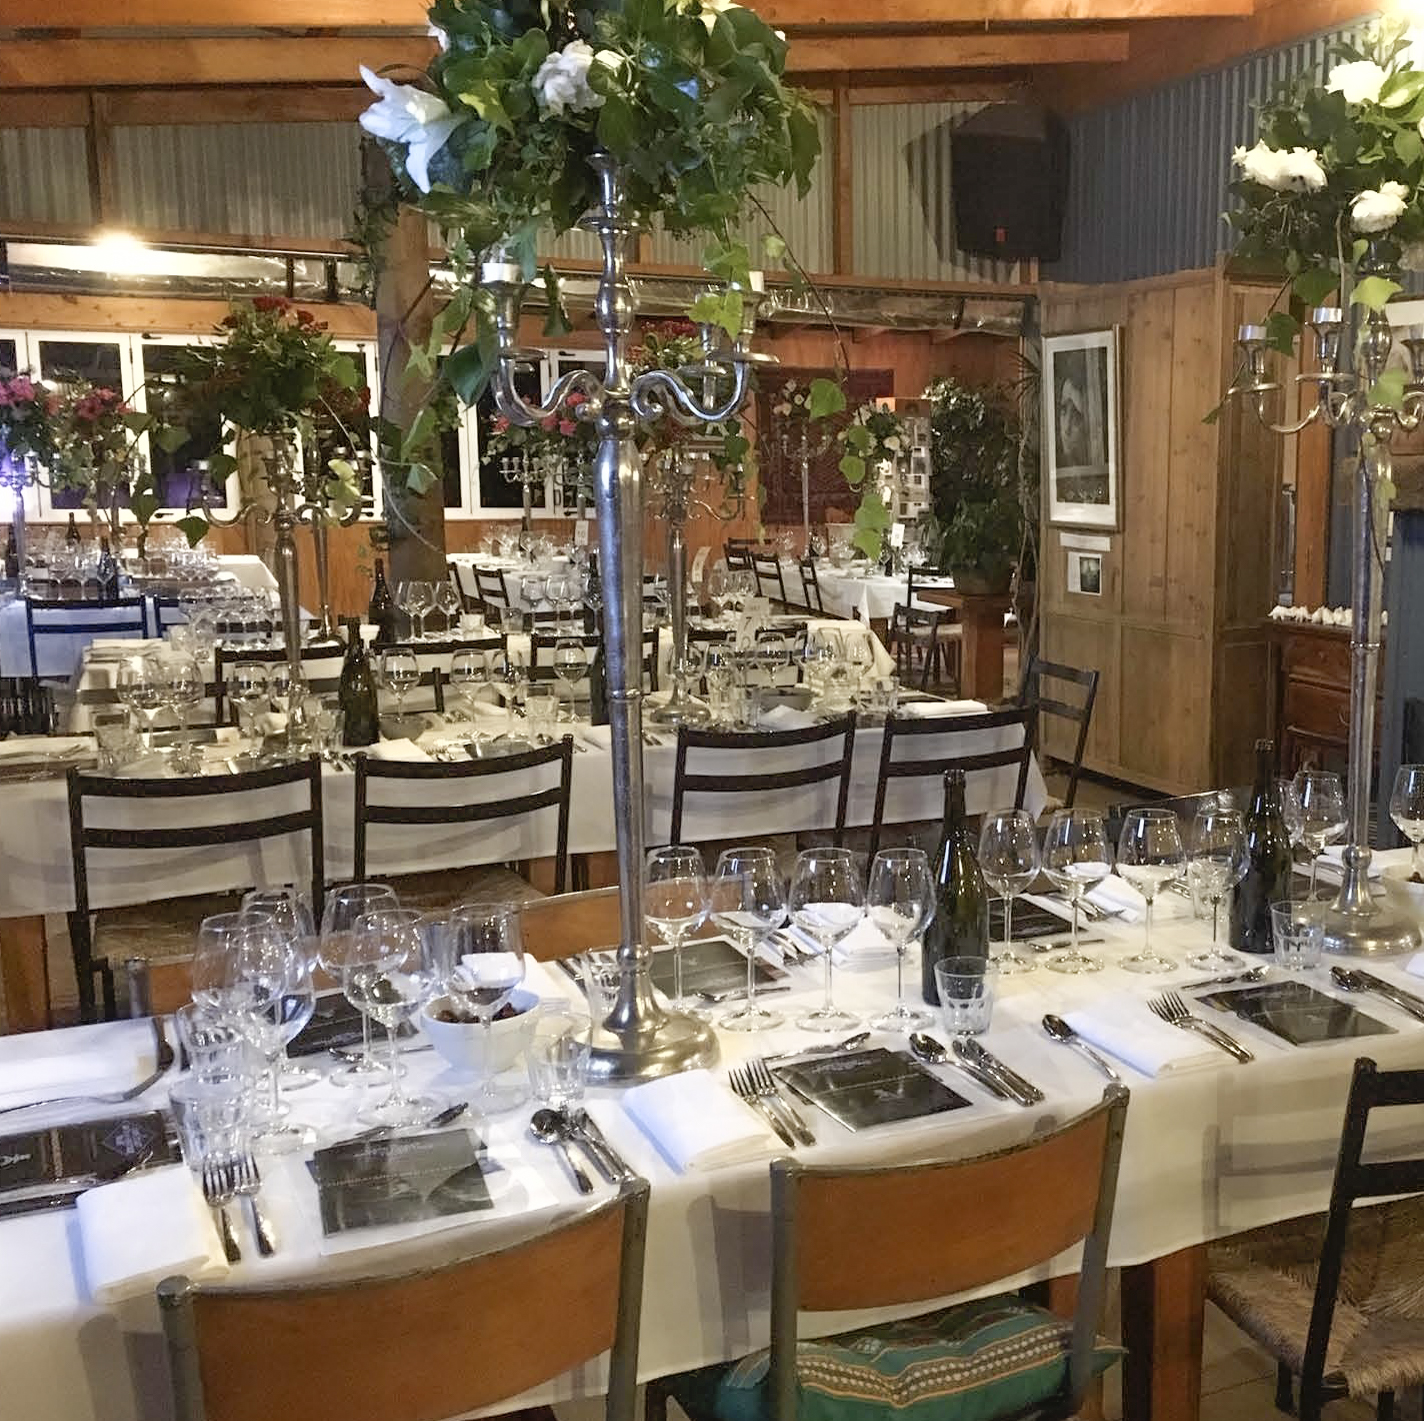 Tables fully prepared with cutlery, glassware and greenery